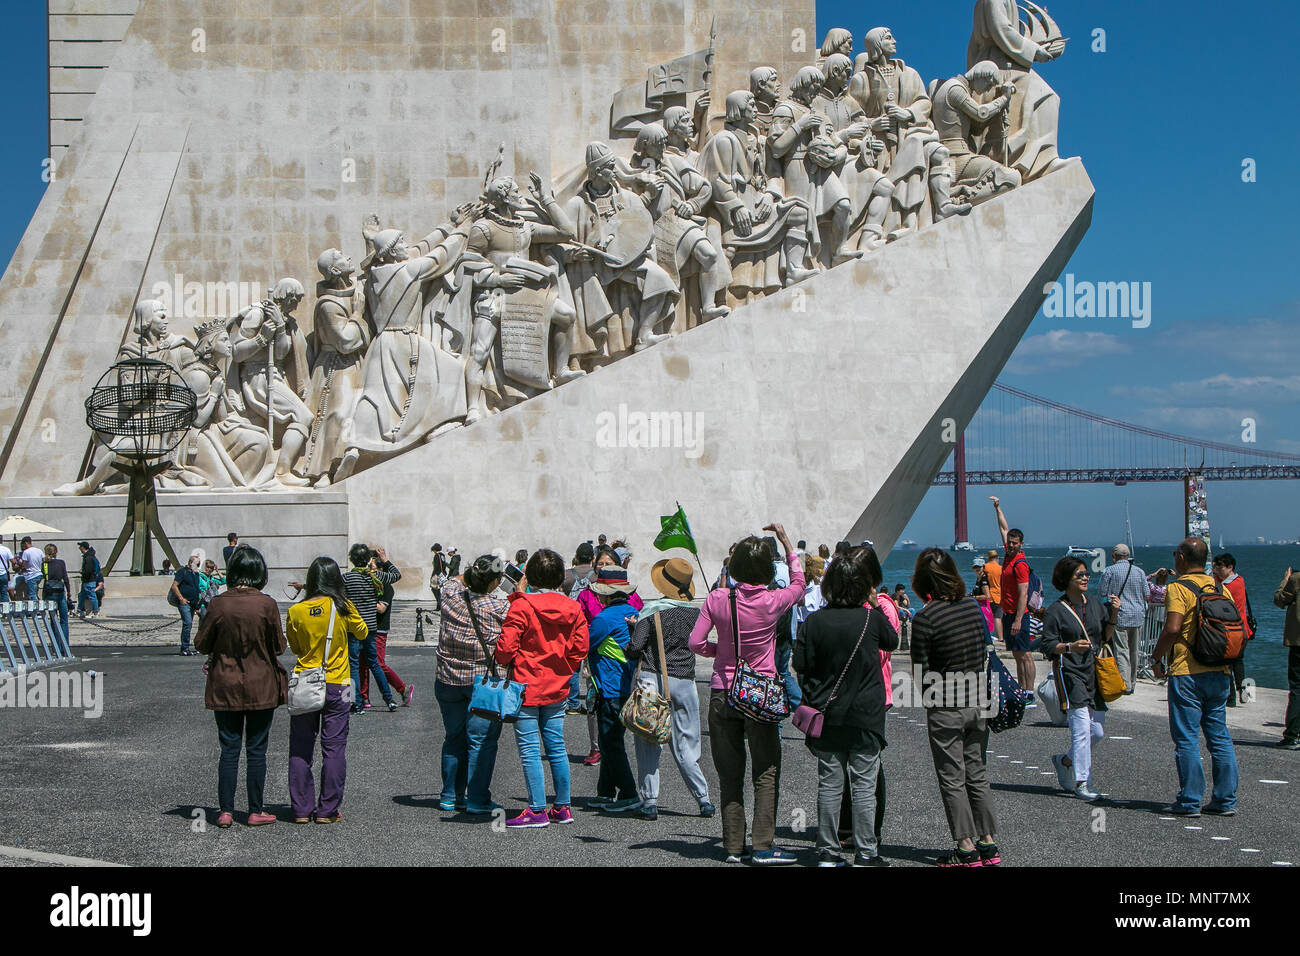 Asian tourists are taking pictures in front of the Monument to Discoveries in Belem, Lisbon, Portugal. - Stock Image